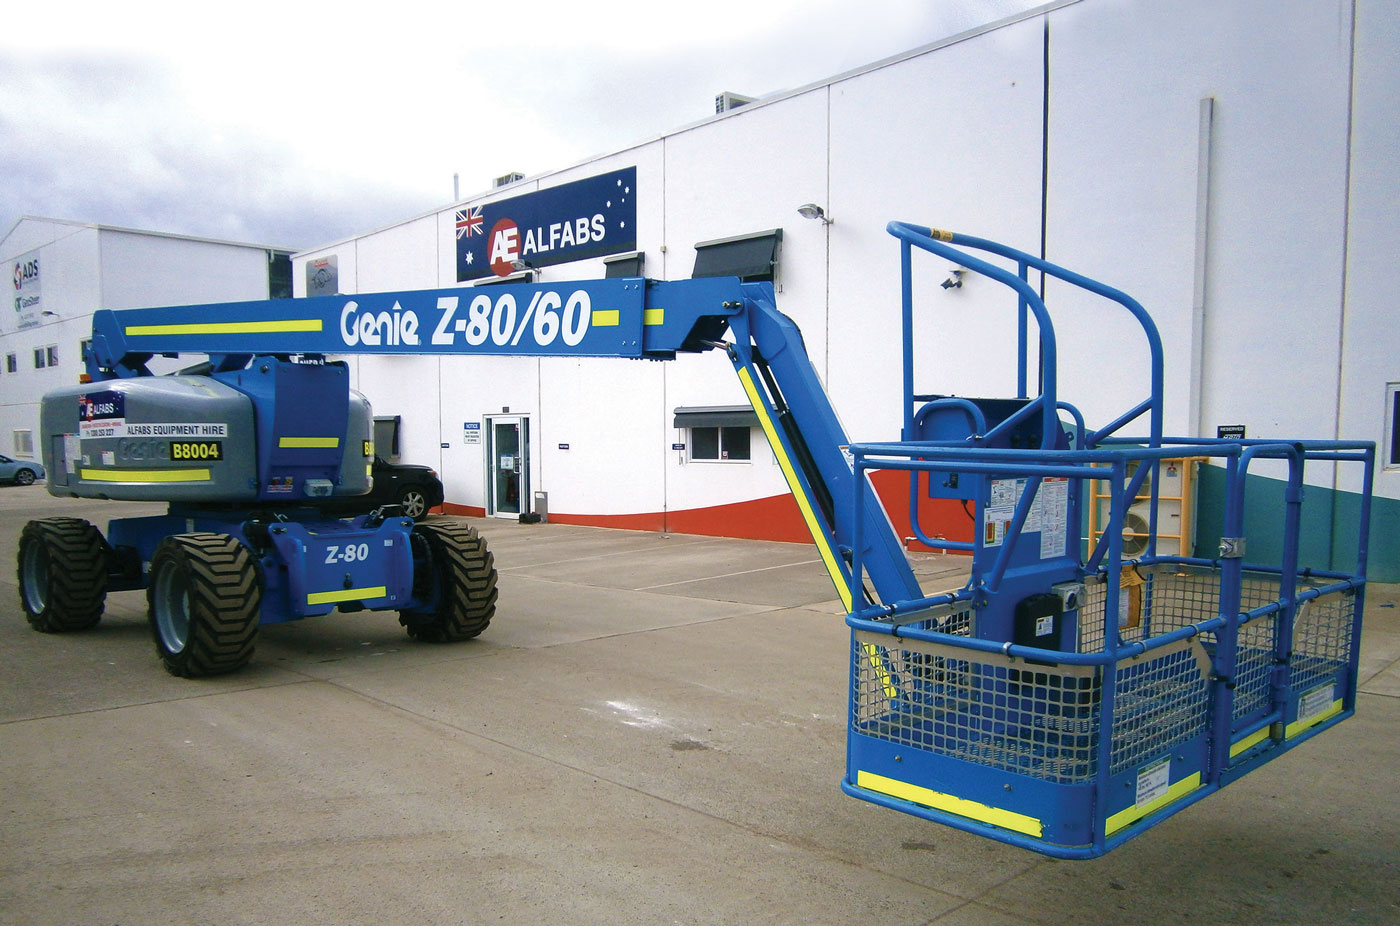 Alfabs were the first company to fit OPS to all Genie® units in their fleet. Up until about a year ago, Alfabs sourced access equipment for their contractual needs from a local   hire company.